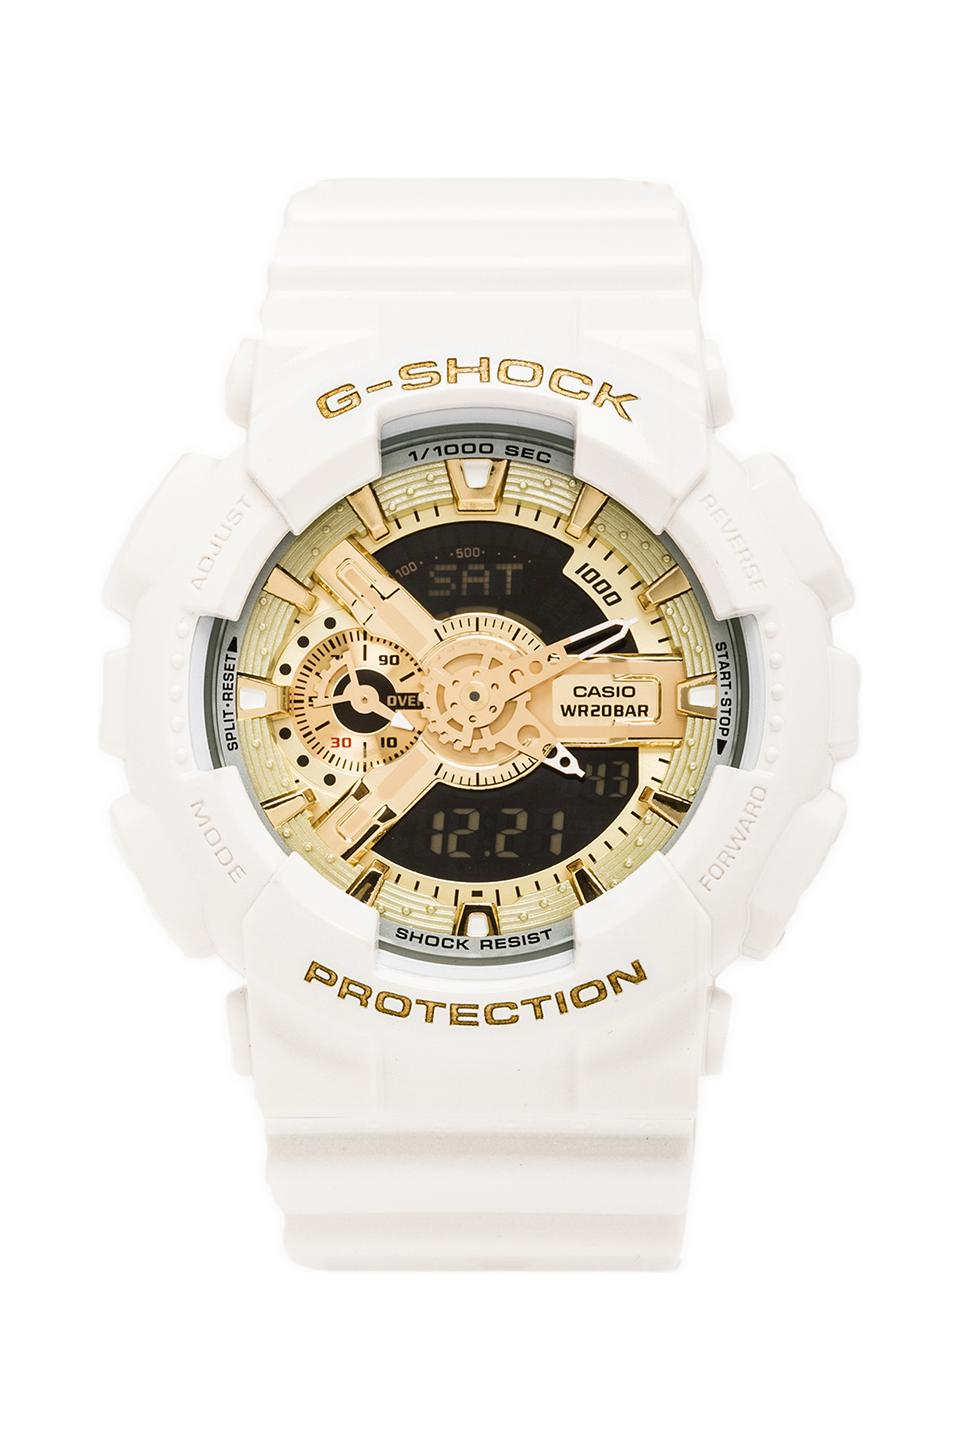 G-Shock x Baby-G Pair in White